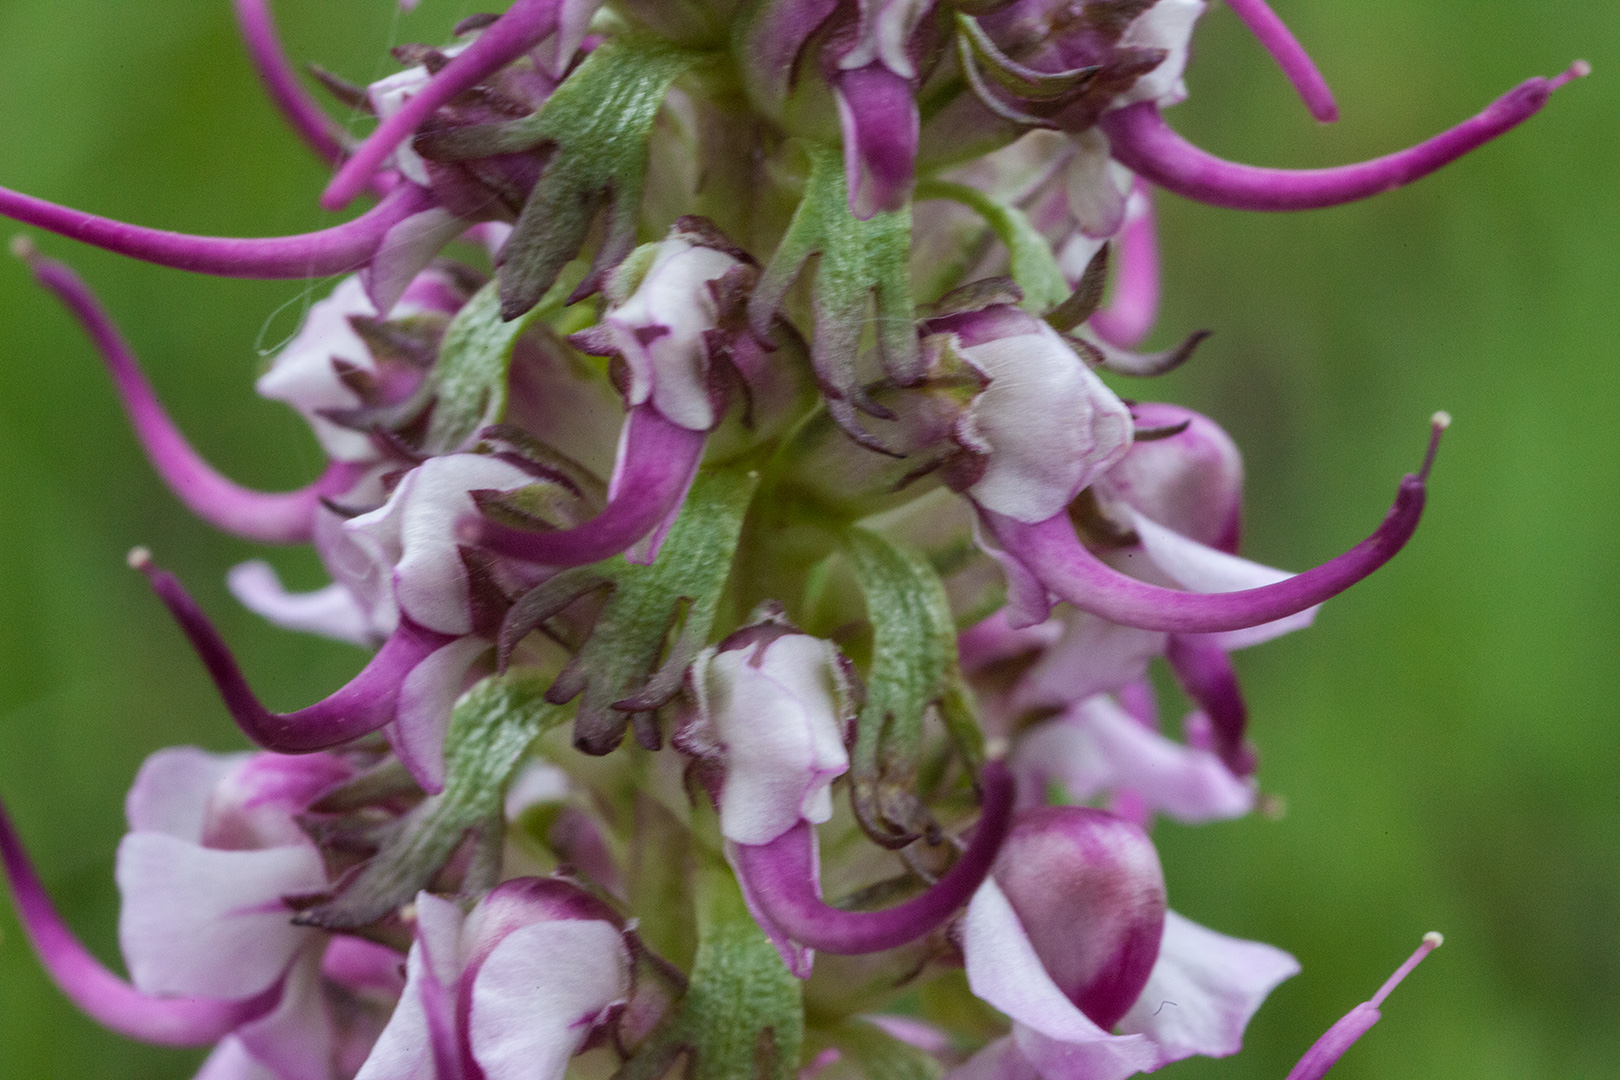 Pedicularis: Delving into patterns of the past